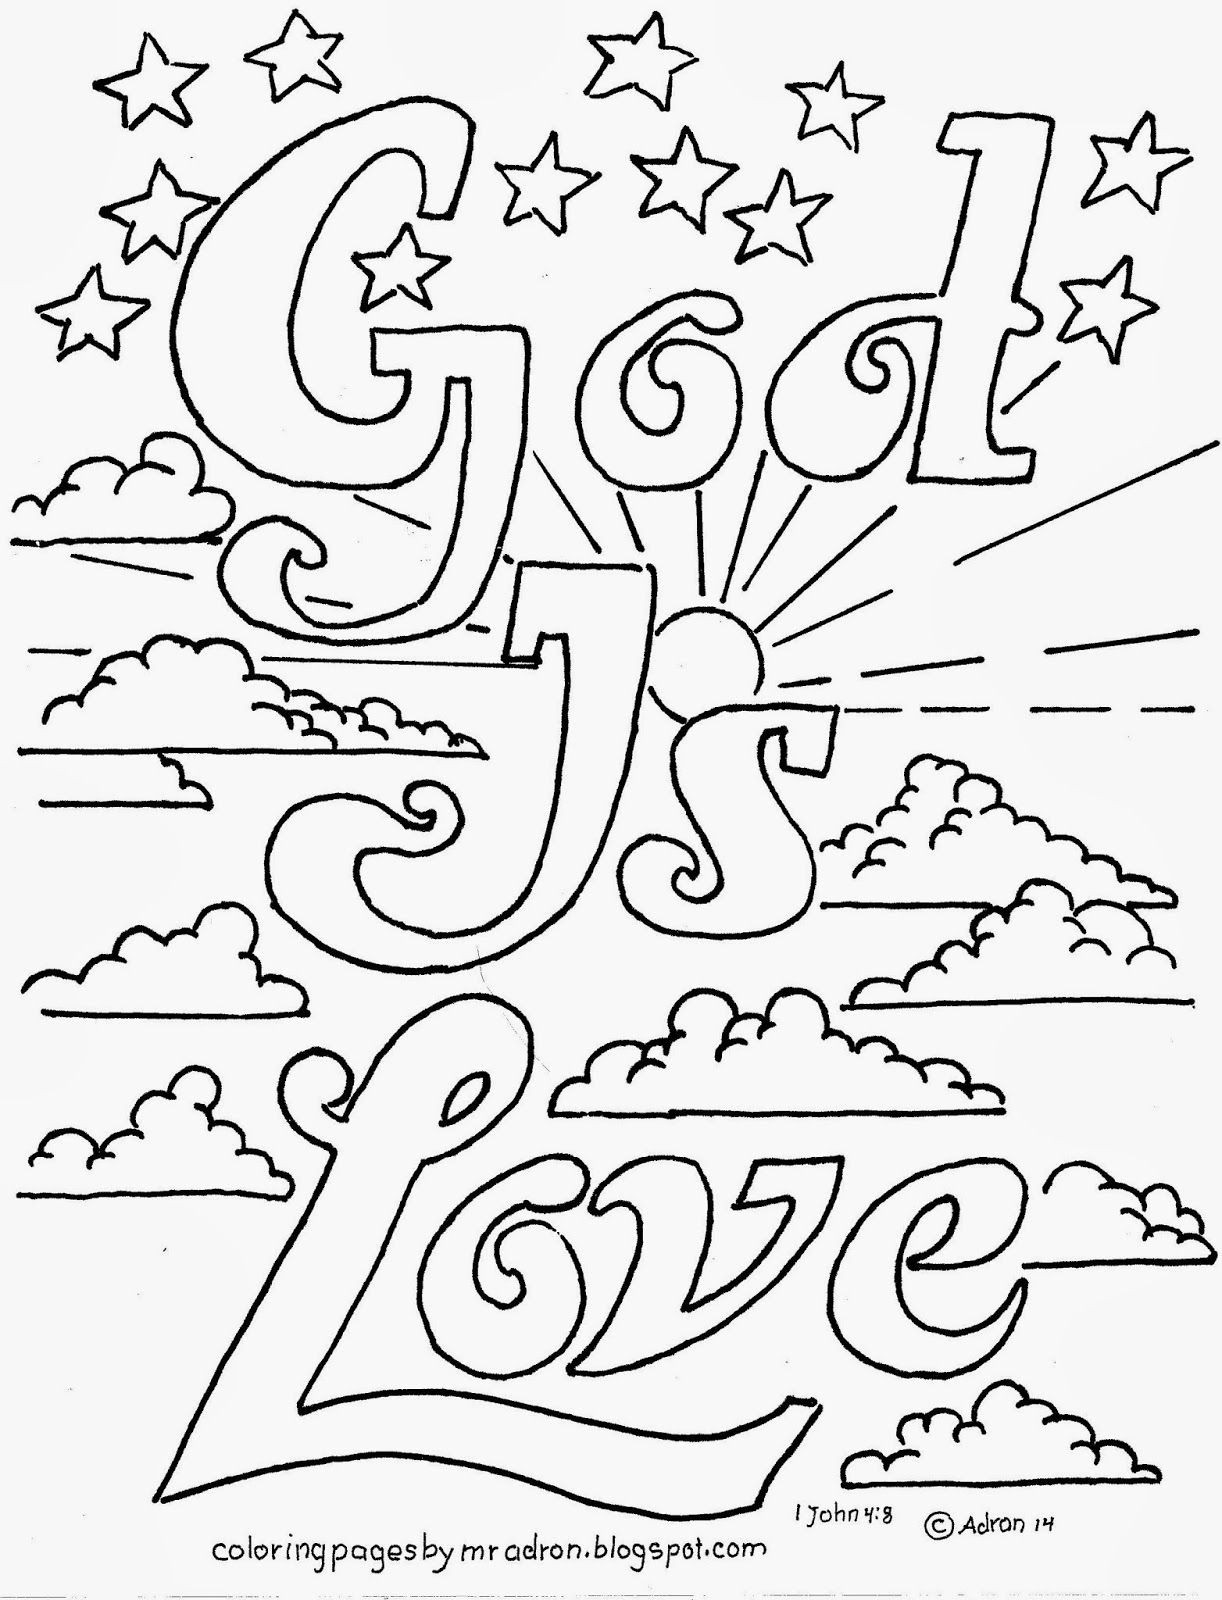 Printable Bible Coloring Pages For Kids Book Of John  Coloring Pages for Kids by Mr Adron God Is Love